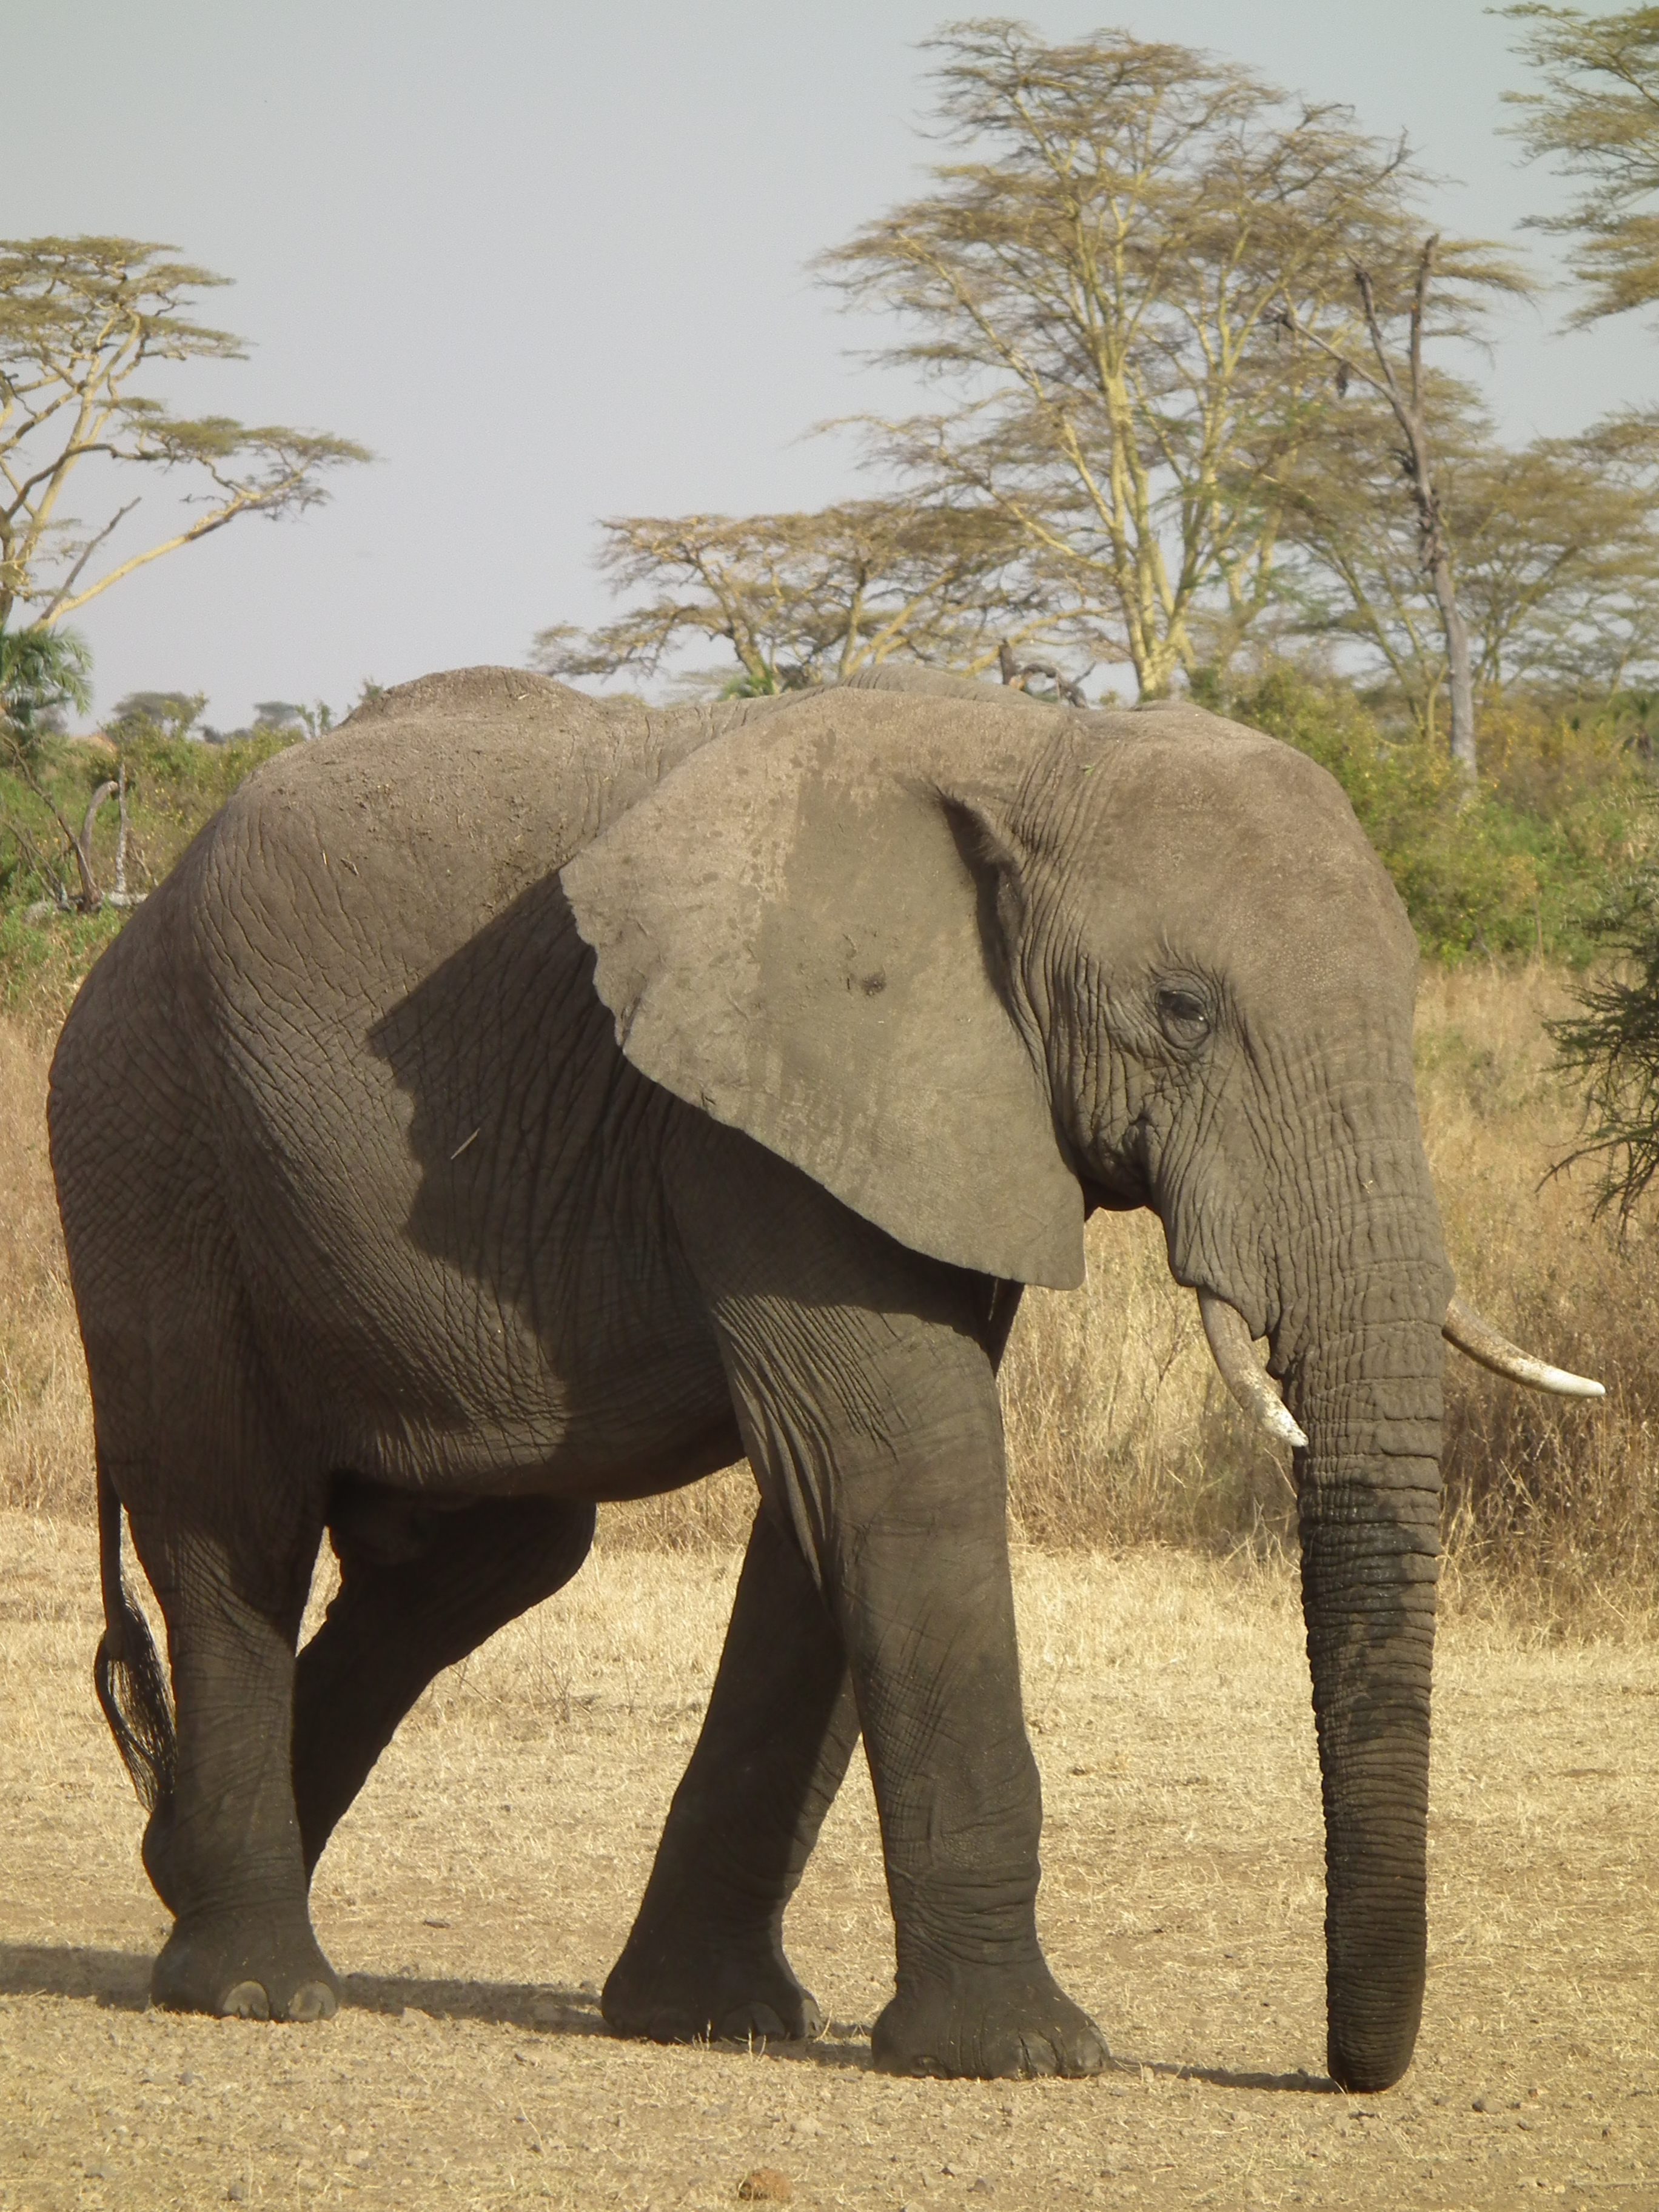 elephant tanzania african animal bush africa nevit arms coat elephants file antelope south commons cape town spoon collector wiki wikipedia